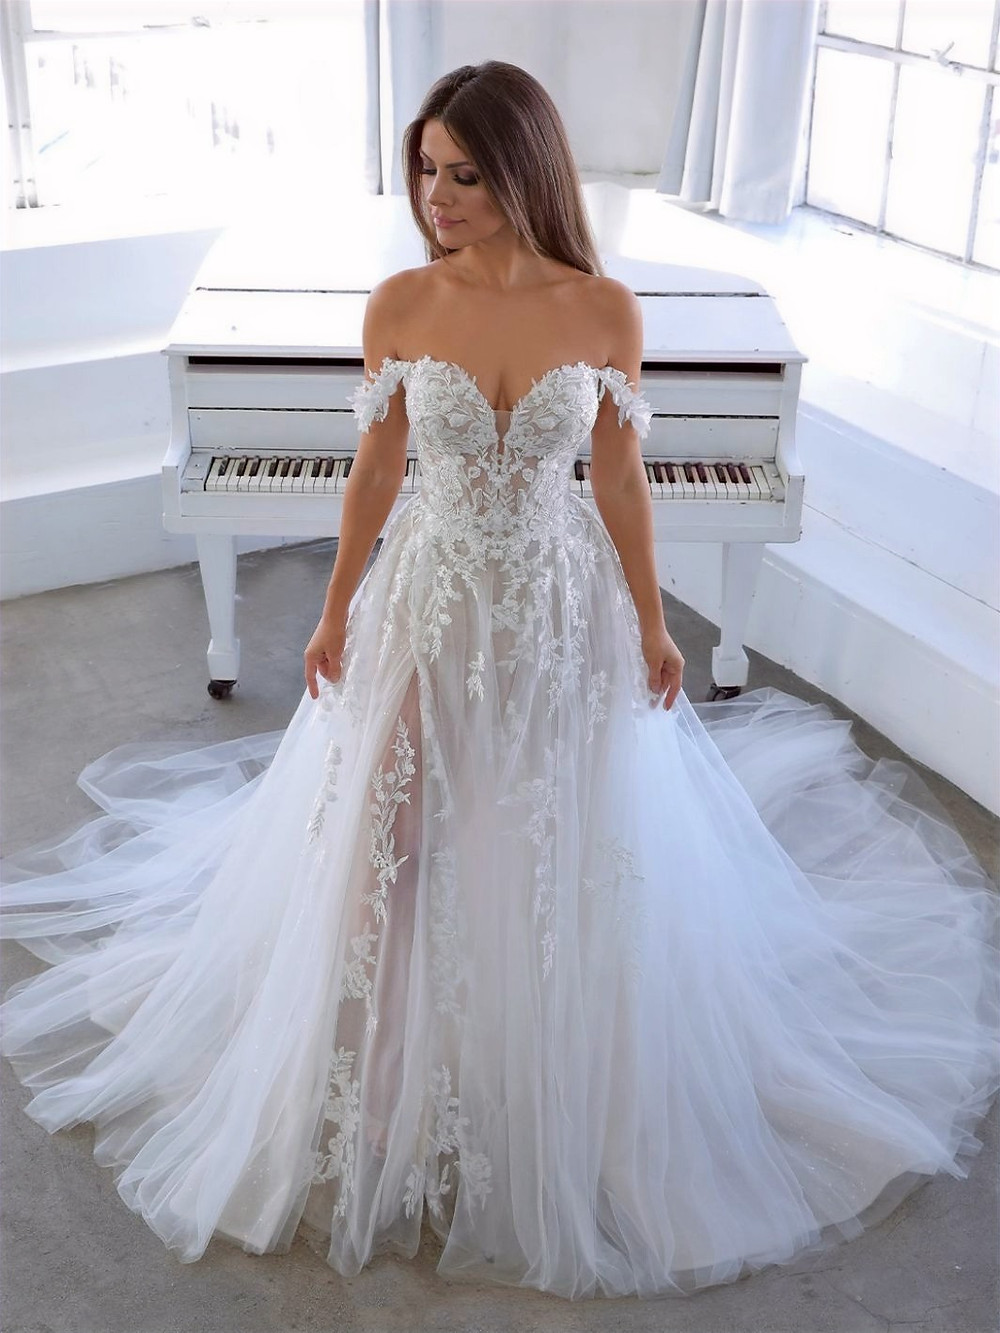 model wearing a wedding dress in front of a piano